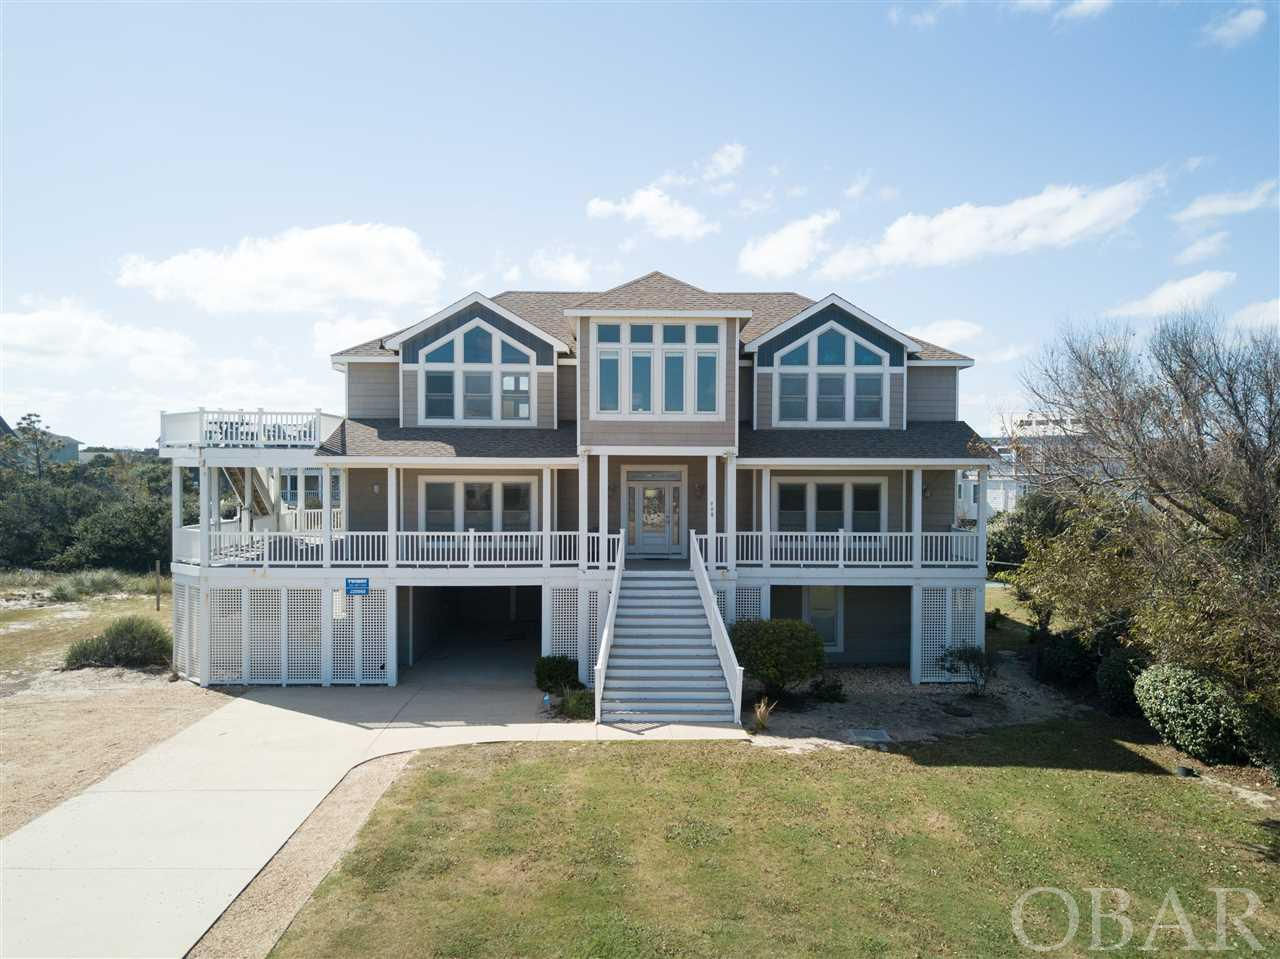 968 Lighthouse Drive,Corolla,NC 27927,10 Bedrooms Bedrooms,10 BathroomsBathrooms,Residential,Lighthouse Drive,98168